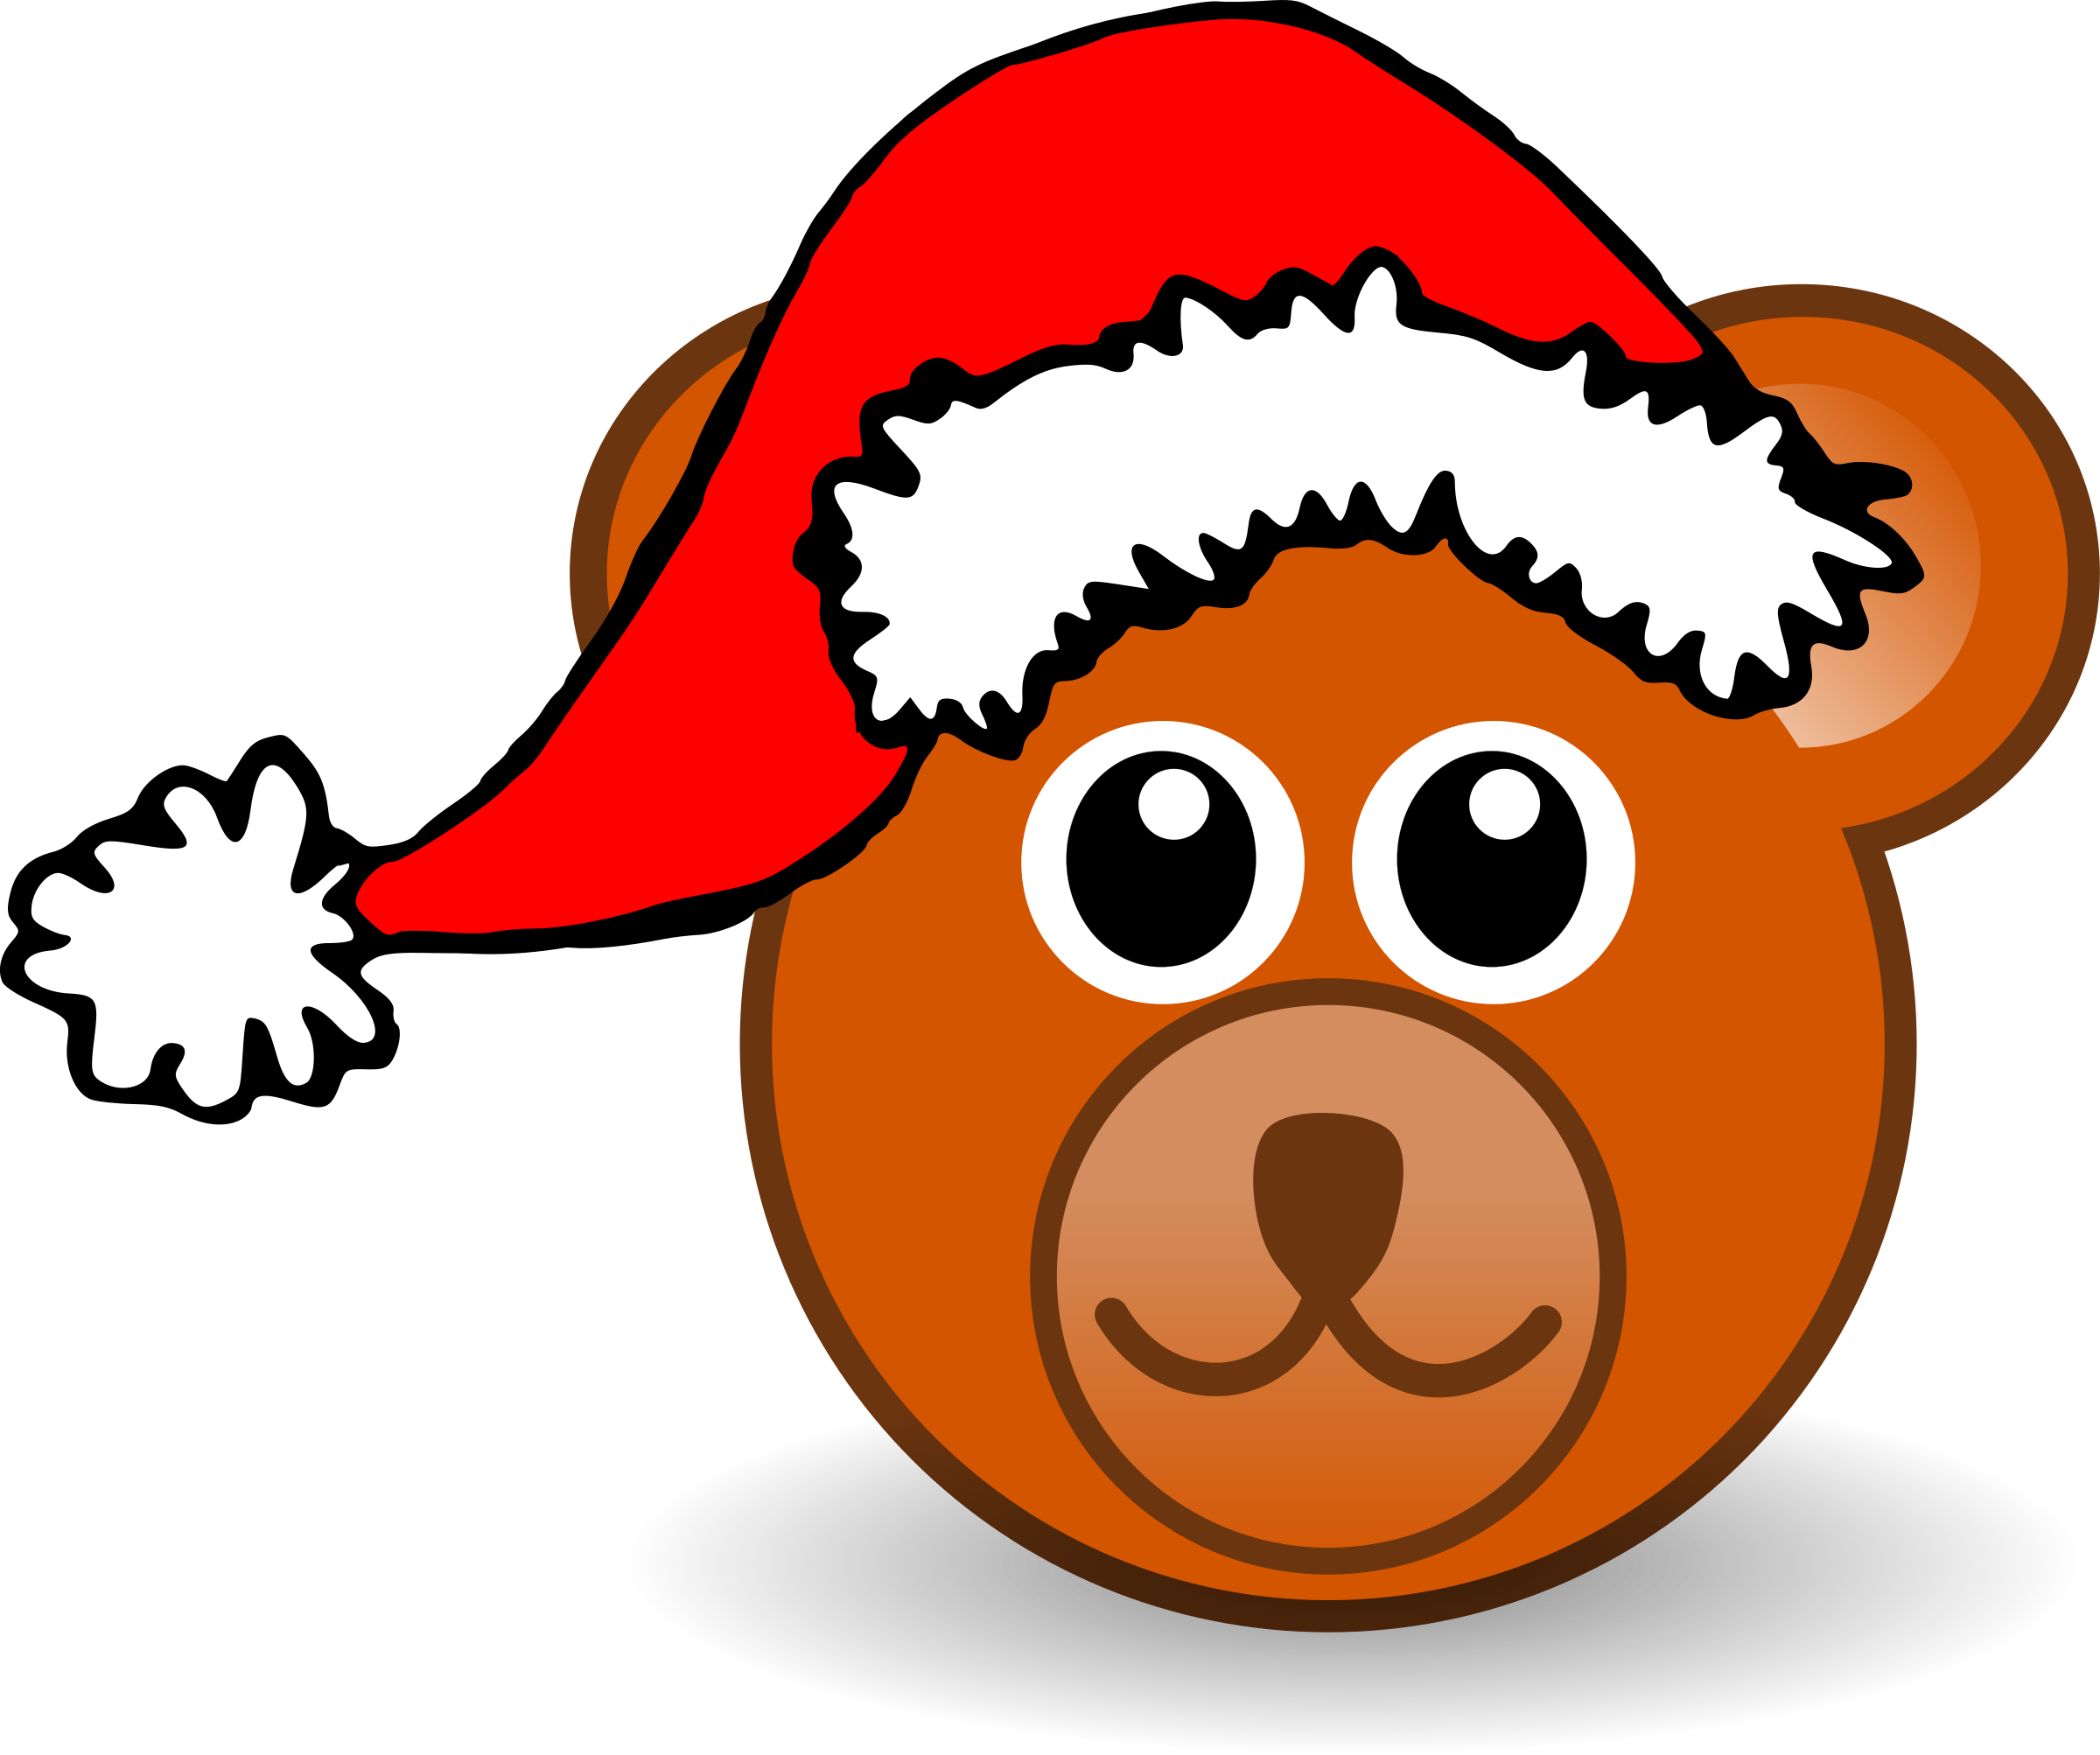 Funny teddy bear face brown with Santa Claus hat by palomaironique